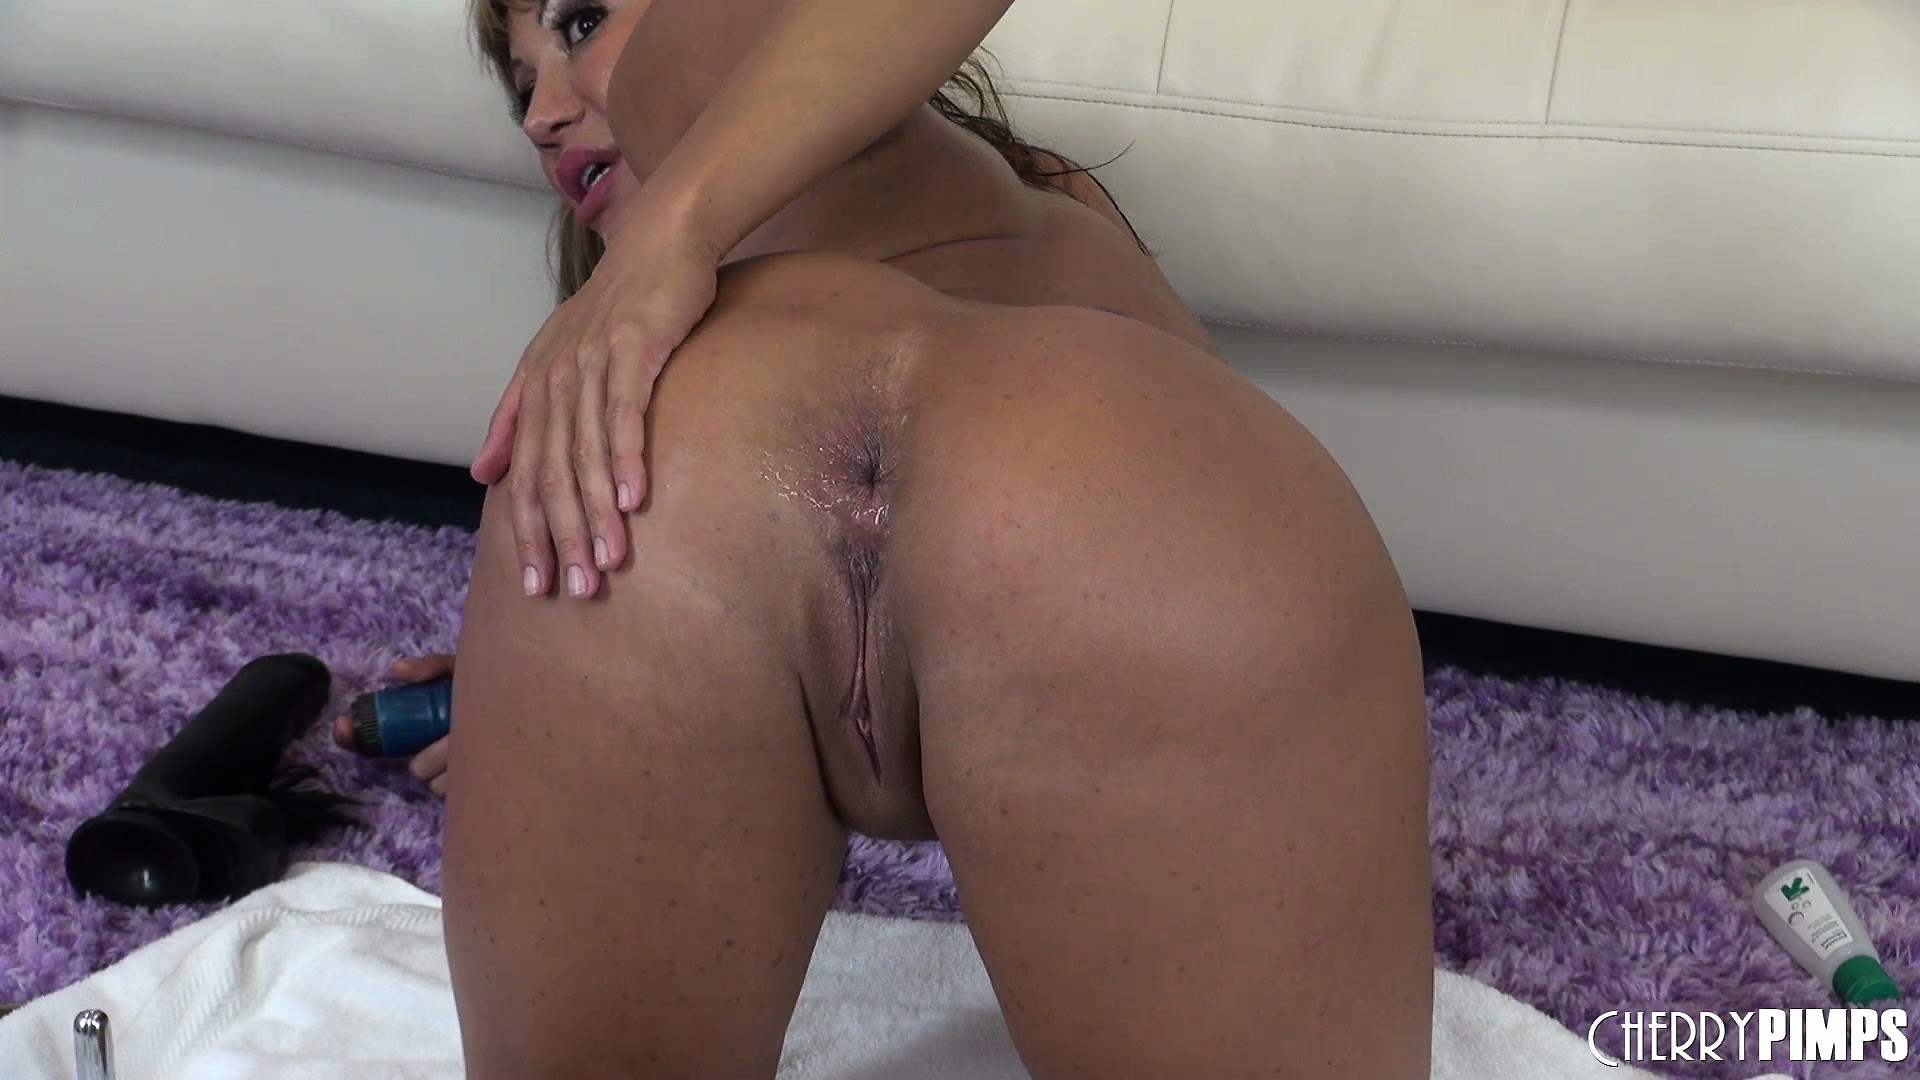 Porno Video of She Toys, Butt Out, And Jams Two Toys In Each Hole Showing Her Ass Again